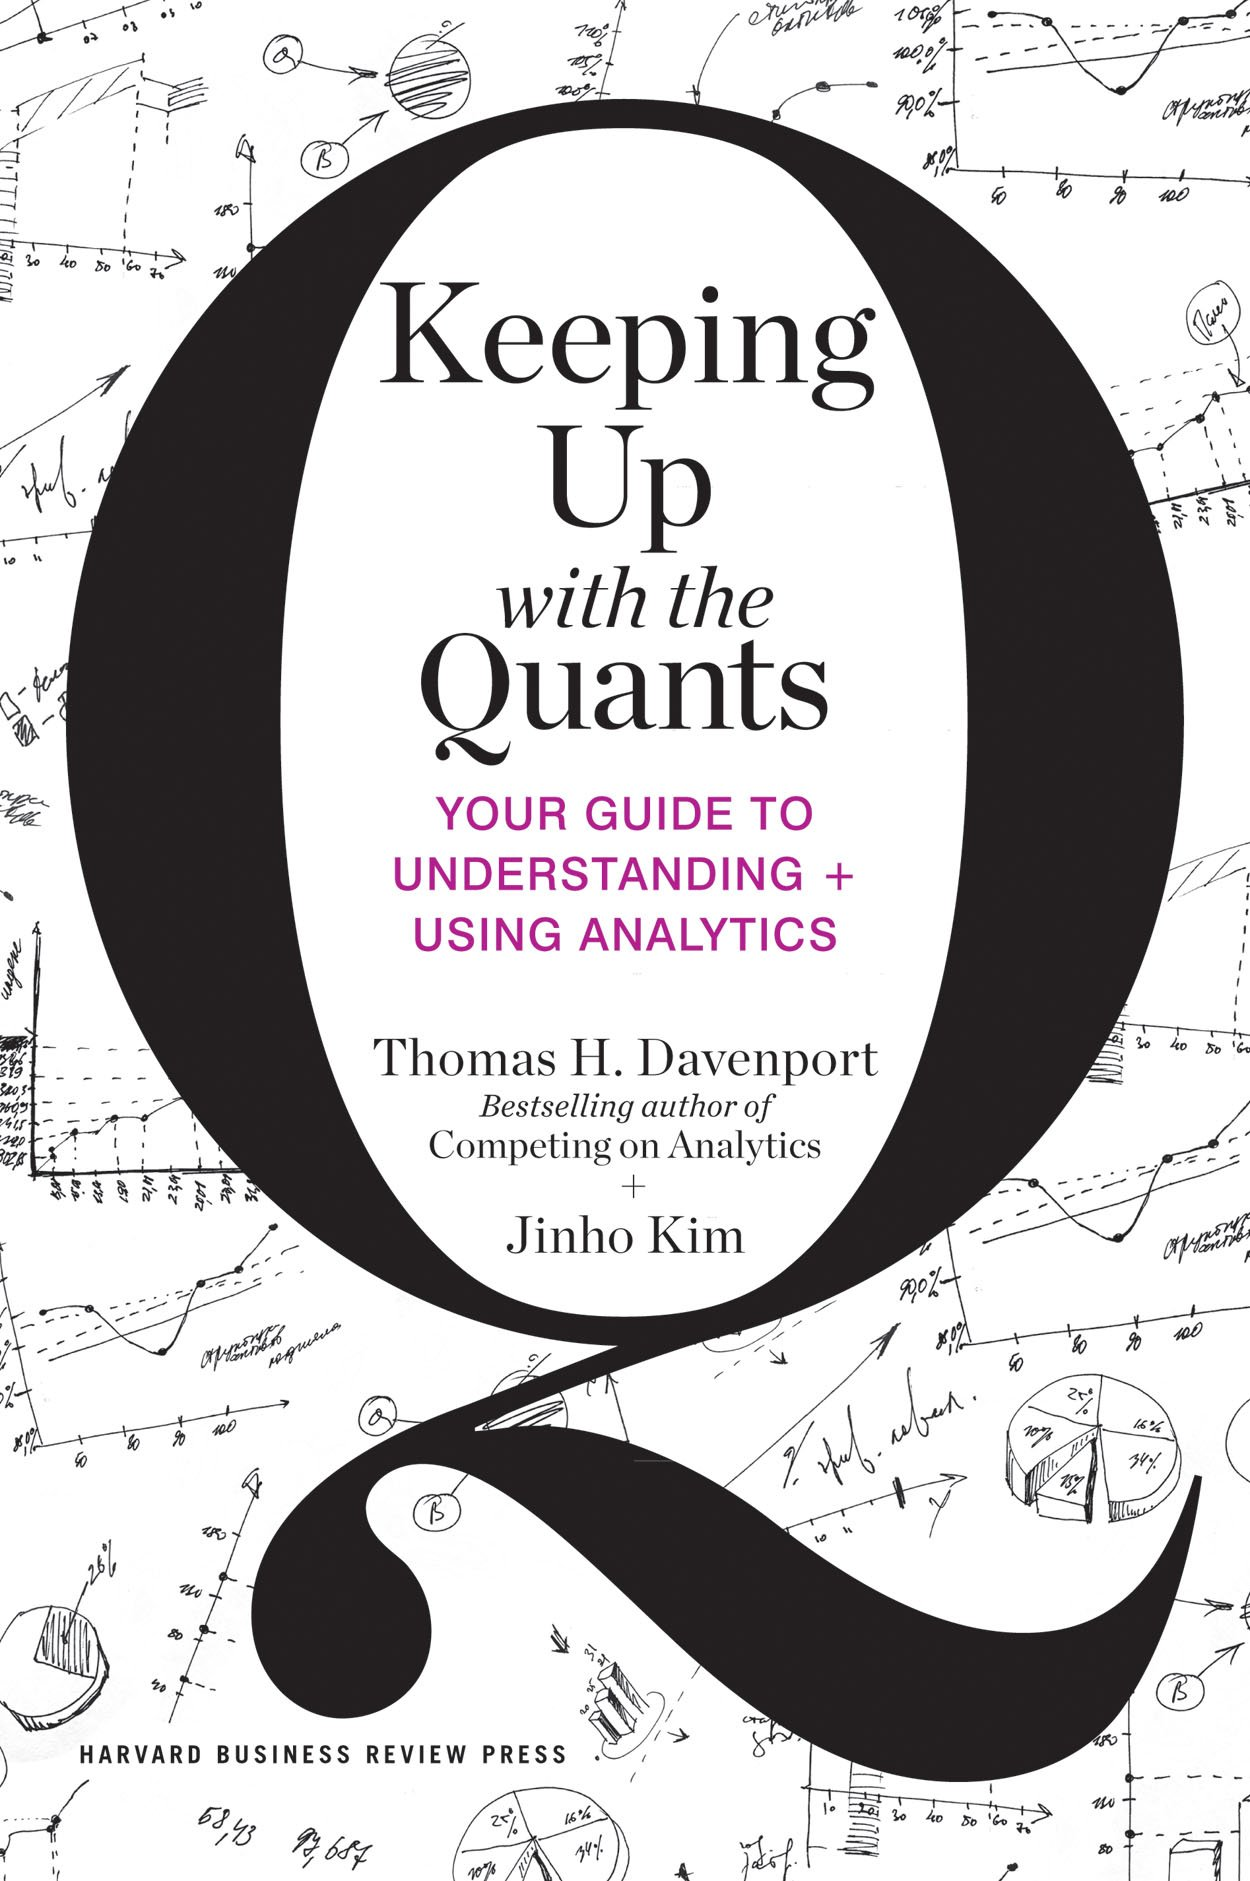 Keeping up with the quants your guide to understanding and using keeping up with the quants your guide to understanding and using analytics thomas h davenport jinho kim 8601420847095 amazon books fandeluxe Choice Image